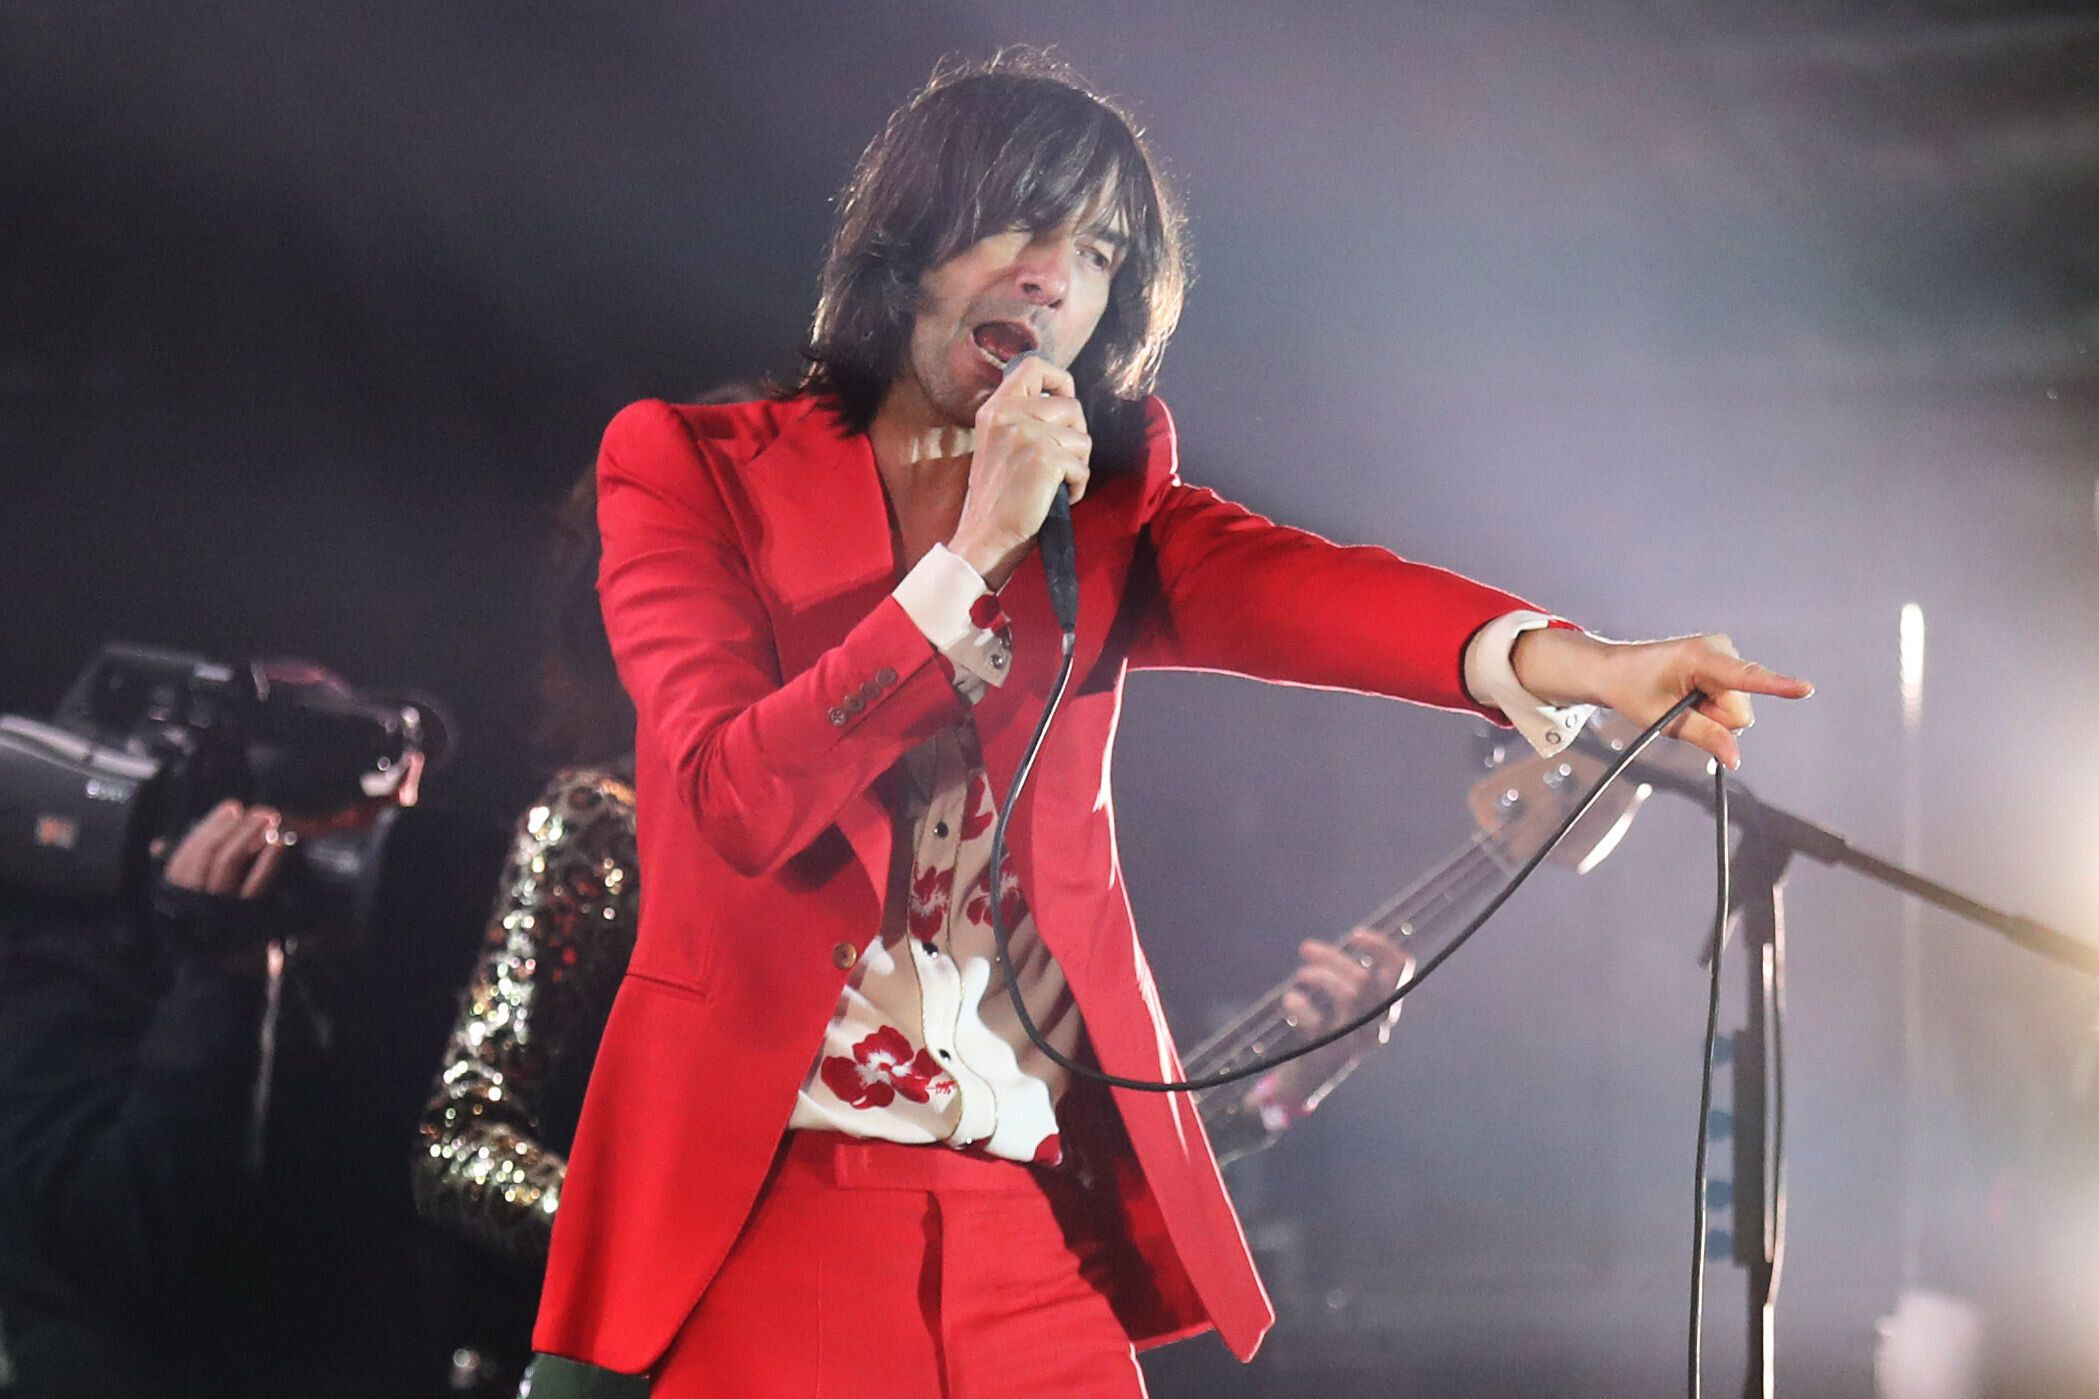 Lead singer of Primal Scream Bobby Gillespie performing at the 3D festival at Slessor Gardens in Dundee, a celebration of design, music and performance to mark the opening of V&A Dundee on September 15. (Photo by Andrew Milligan/PA Images via Getty Images)